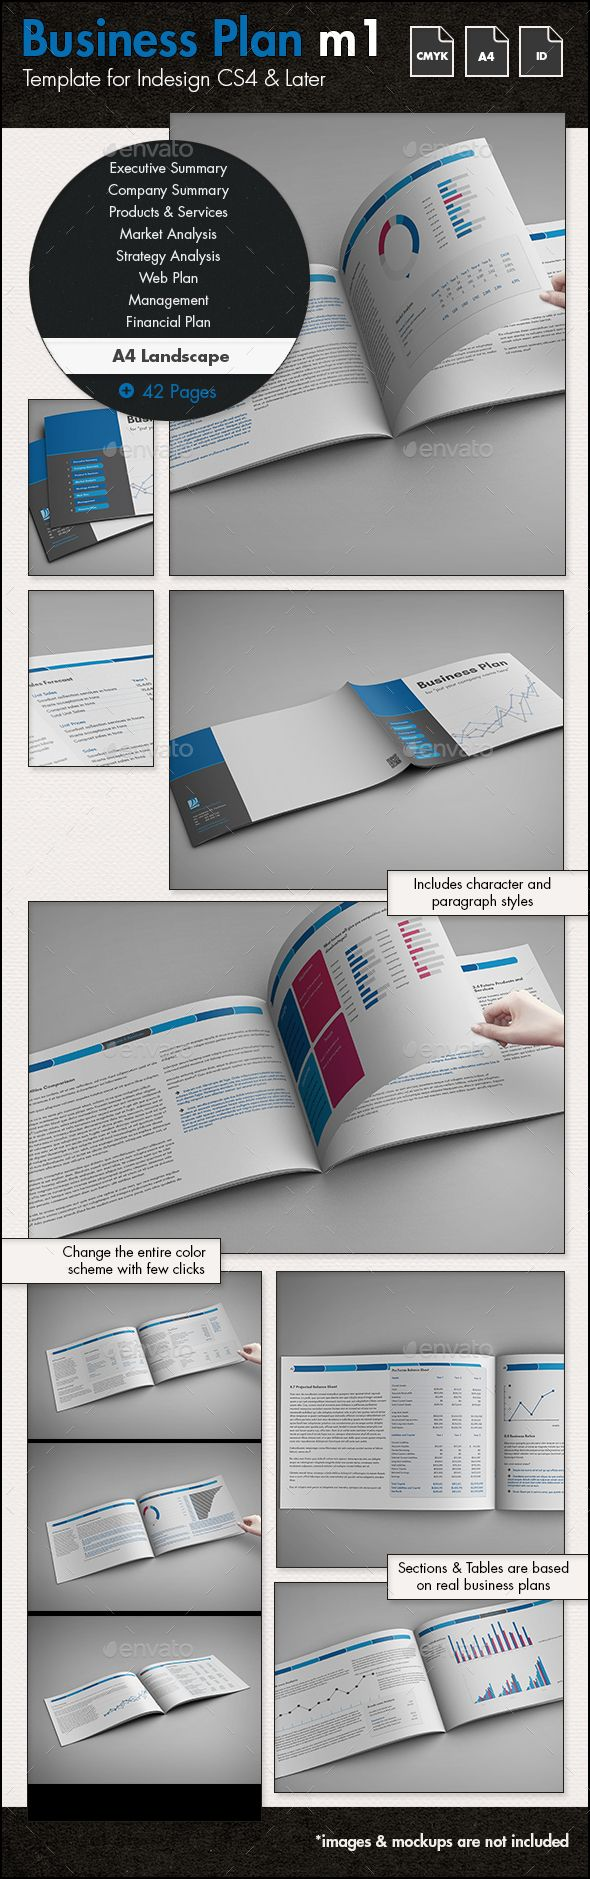 Business plan template m1 a4 landscape business planning business plan template m1 a4 landscape indesign indd editable charts plan available here cheaphphosting Gallery